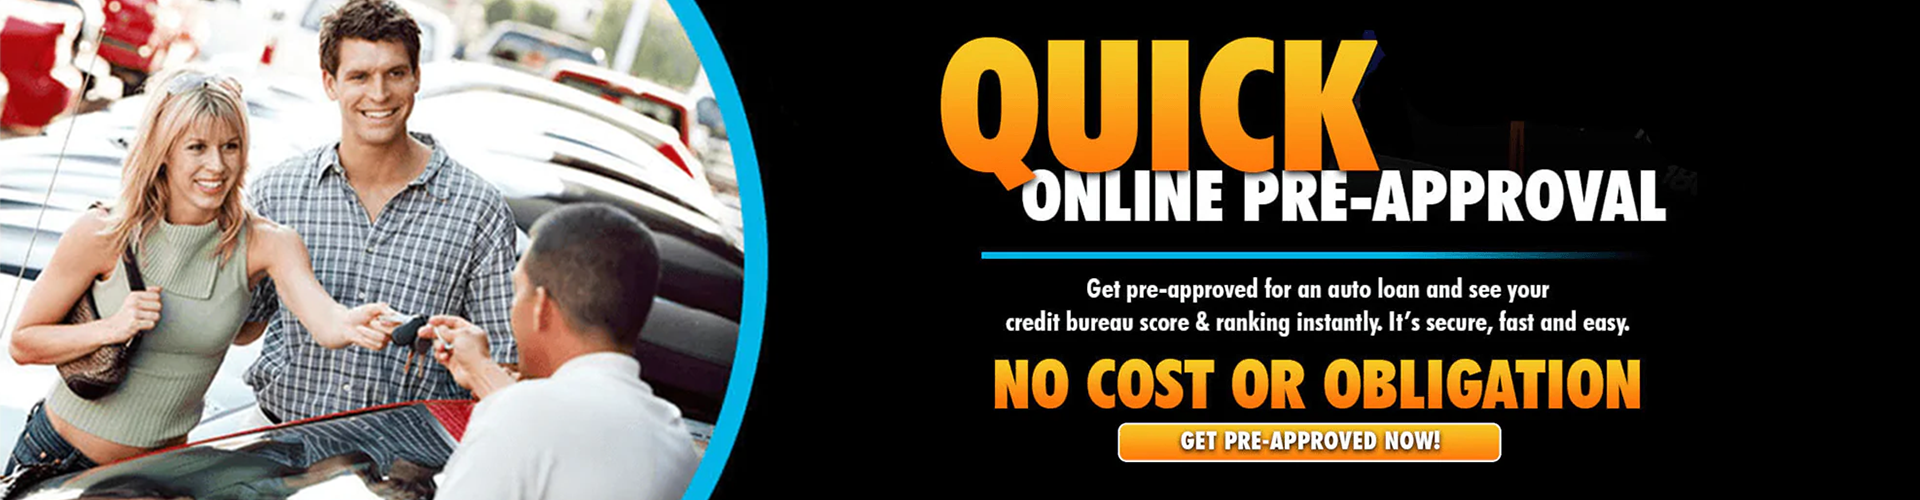 The Taylor Automotive Family Quick Online Pre-Approval